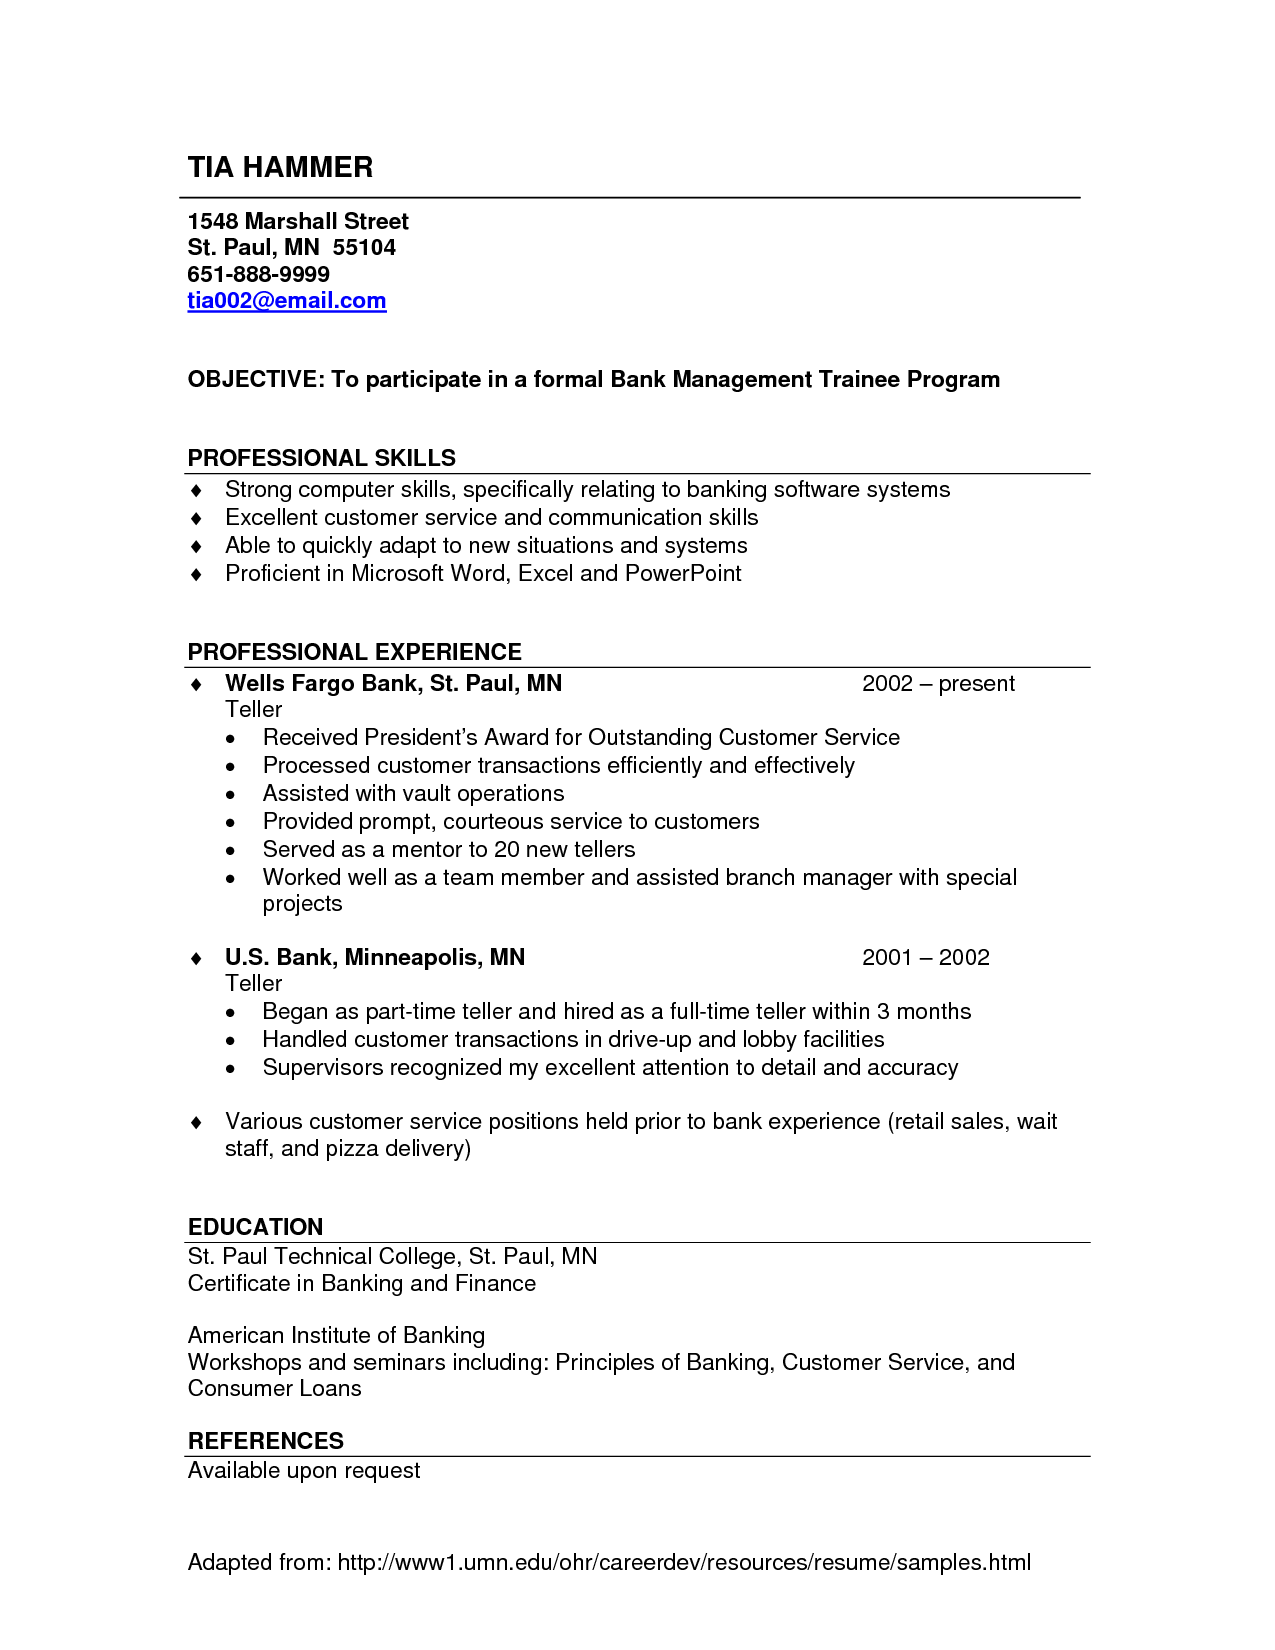 Bank Teller No Experience Resume Sample Bank Teller Resume With No Experience Http Www